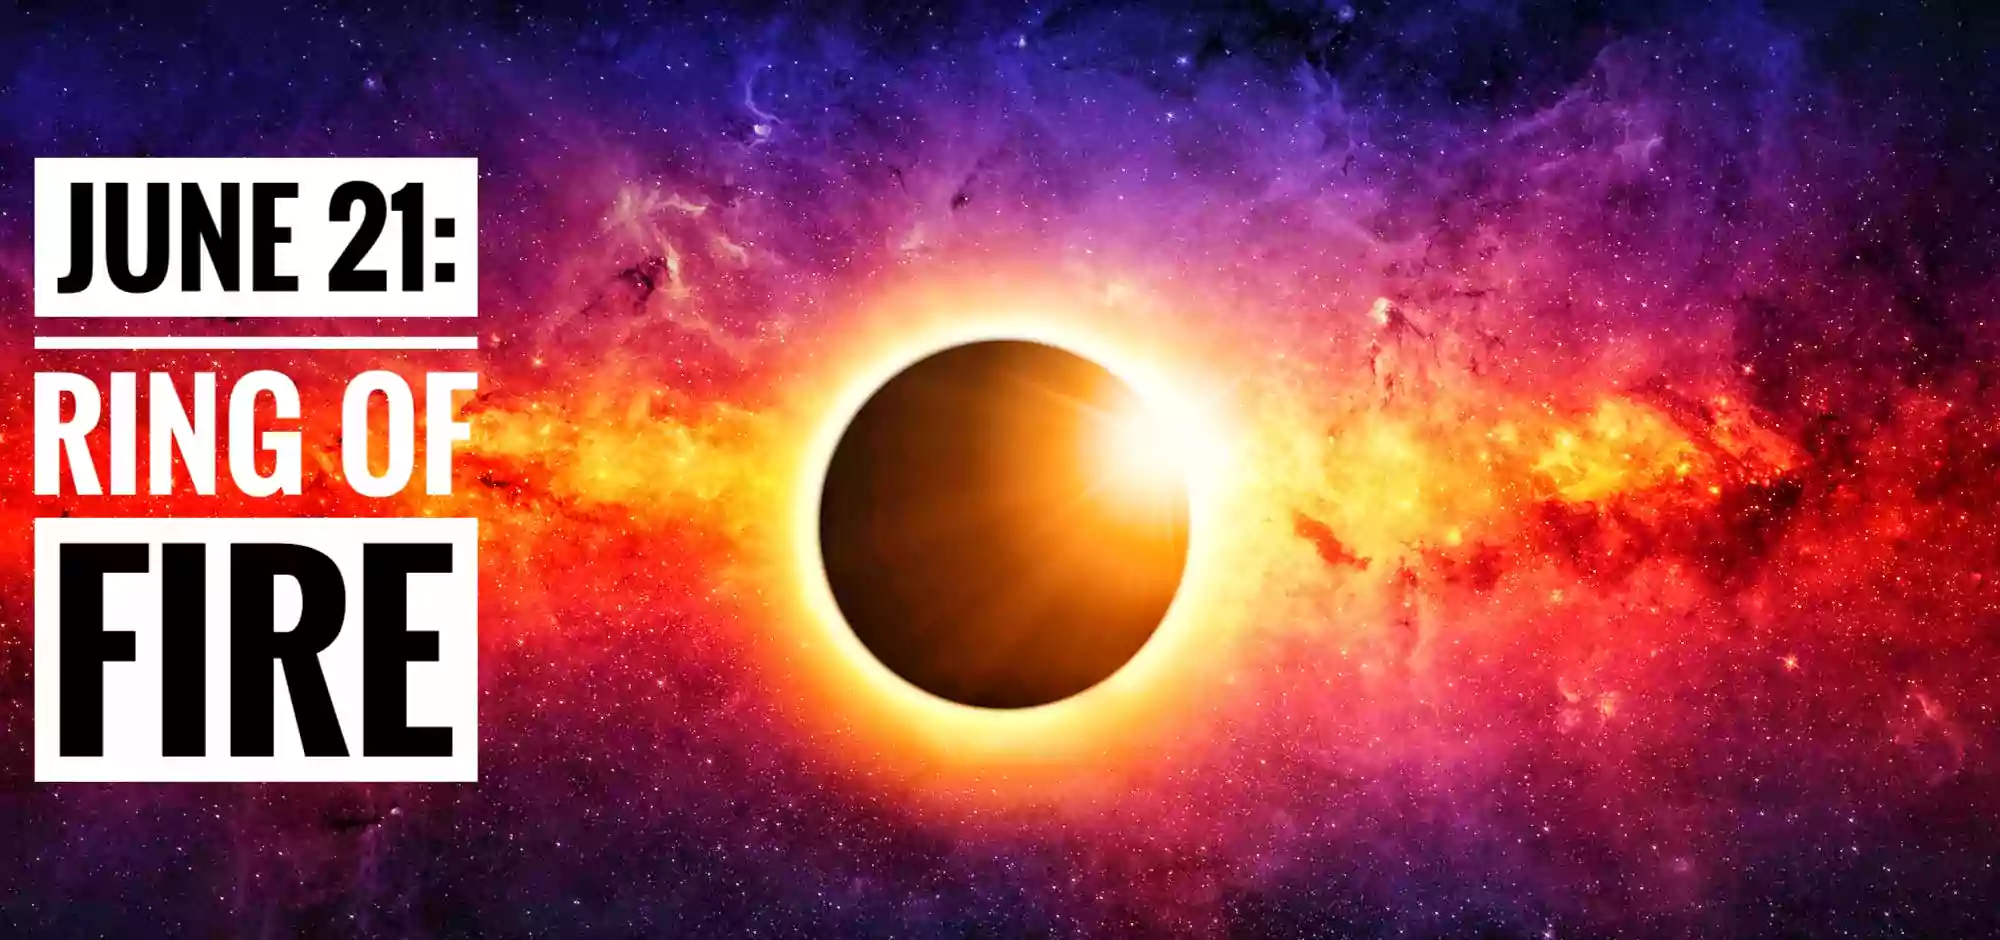 Ring of Fire: Special Annular Solar eclipse will occur on June 21, 2020,